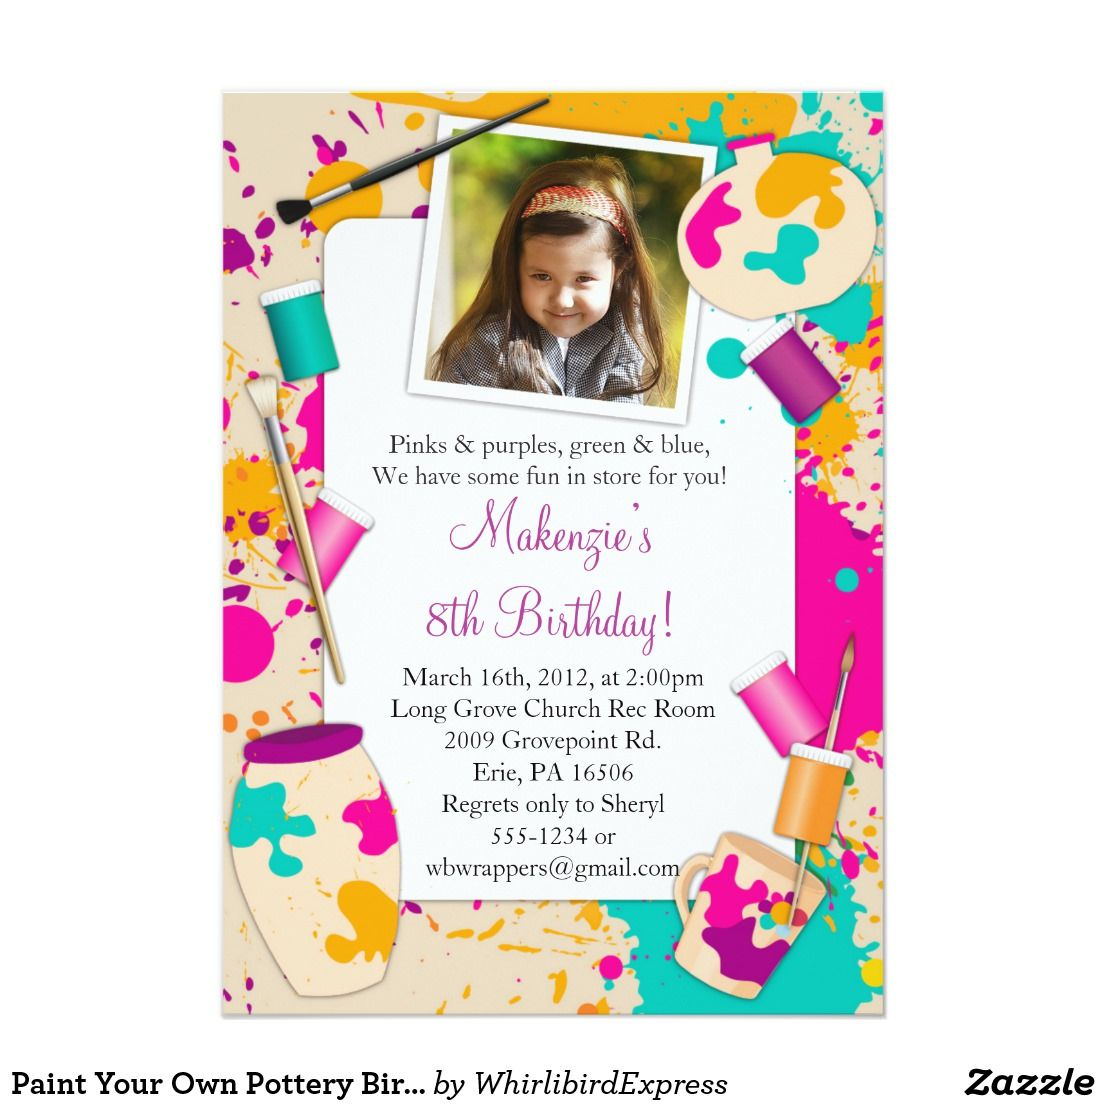 Paint Your Own Pottery Birthday Party Invitation | { Happy Birthday ...